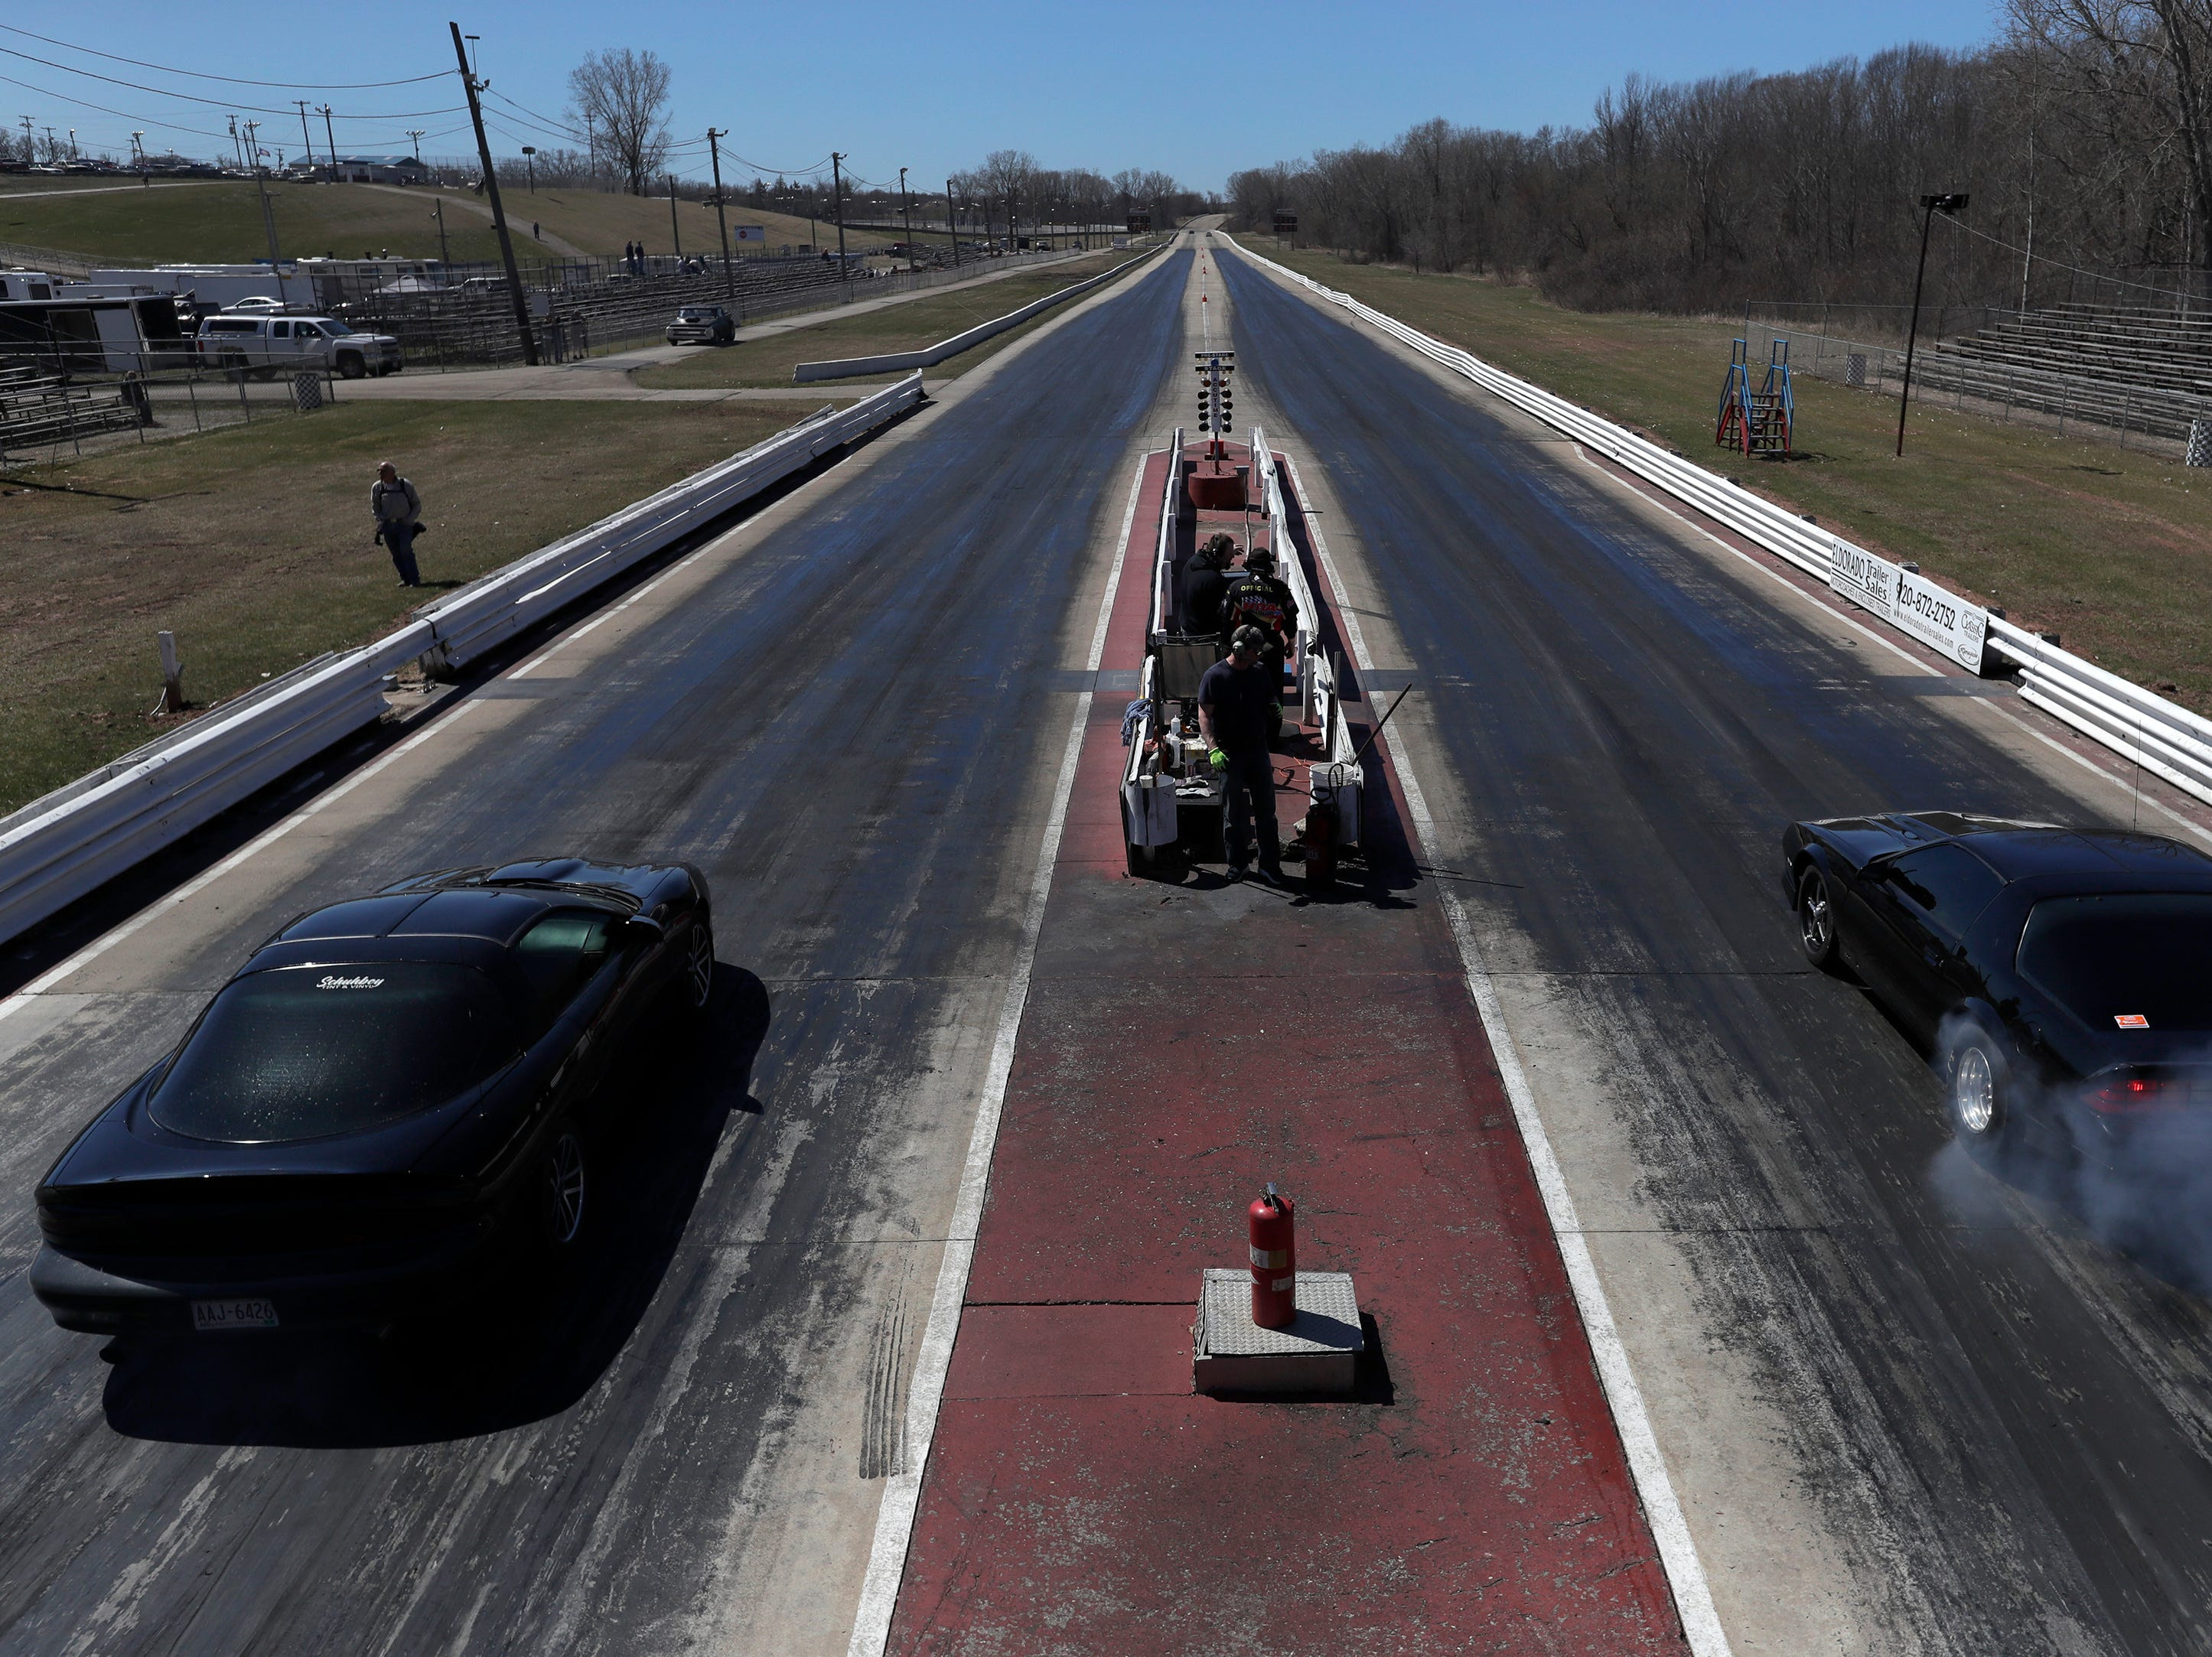 Cares take off down the dragstrip during the Wisconsin International Raceway Strip Test & Tune event Saturday, April 20, 2019, in Kaukauna, Wis. Drivers spent the day getting safety inspections, tune ups and test runs on the track for the upcoming season.